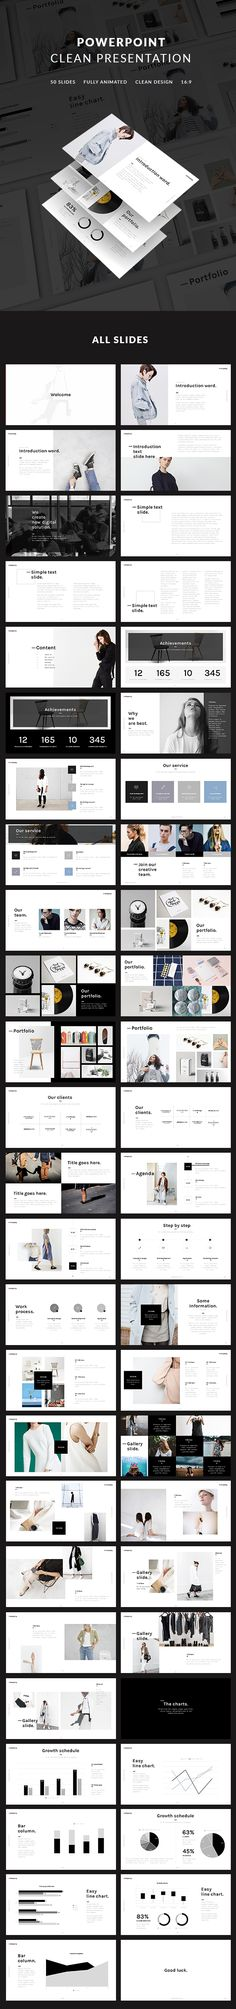 Fashion Design Presentation Layout Inspiration New Ideas Layout Design, Web Design, Website Design, Modern Design, Design Ideas, Design Presentation, Portfolio Presentation, Business Presentation, Presentation Slides